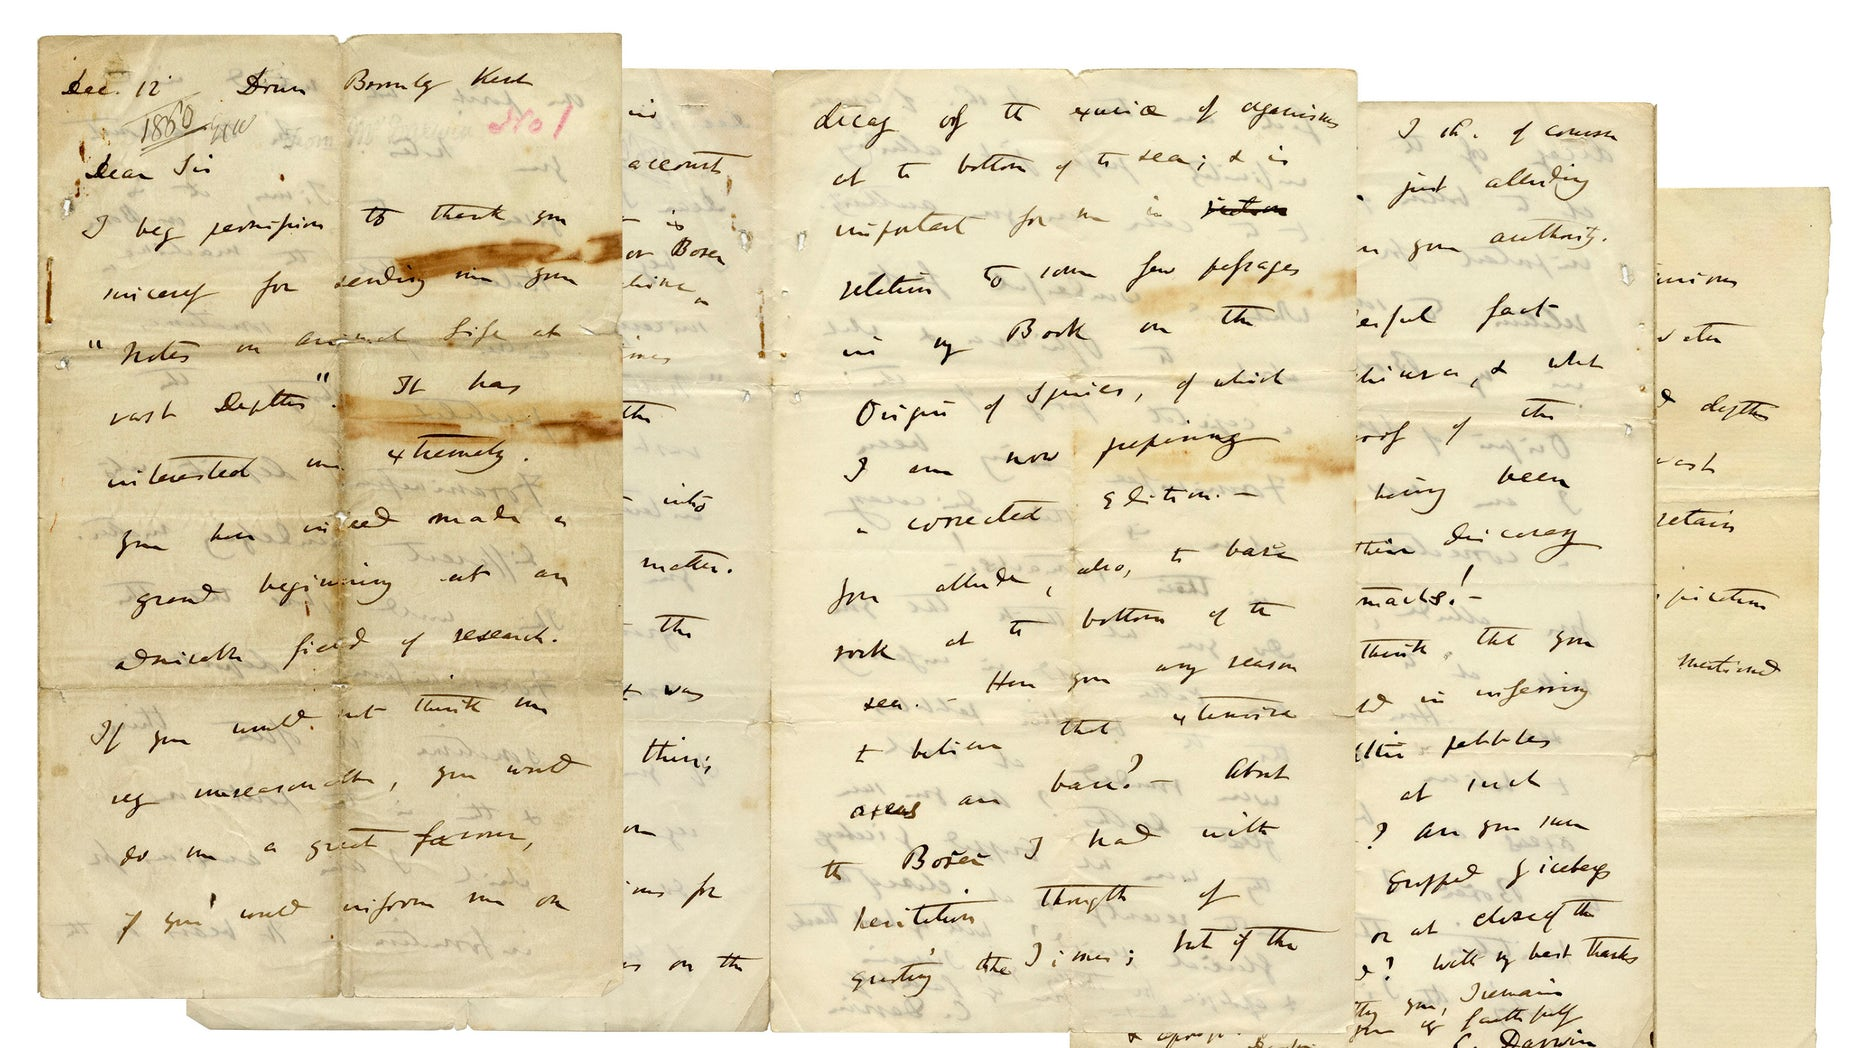 The Darwin letter set to be auctioned off Thursday. (Nate D. Sanders Auctions)